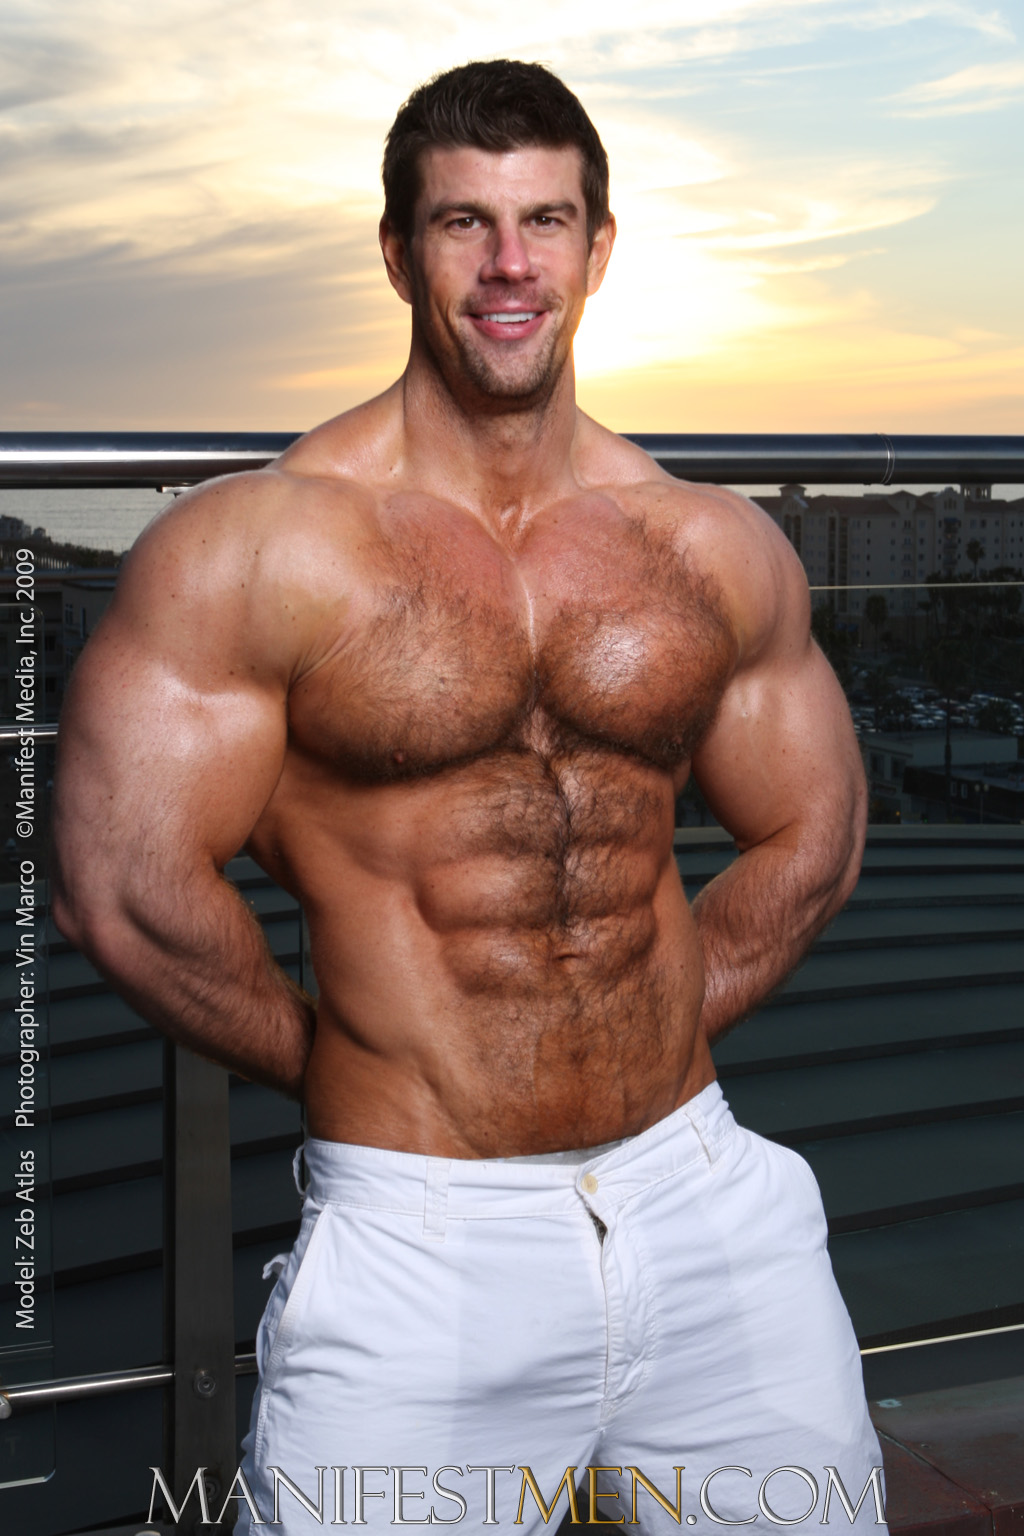 Manifest Men / Zeb Atlas